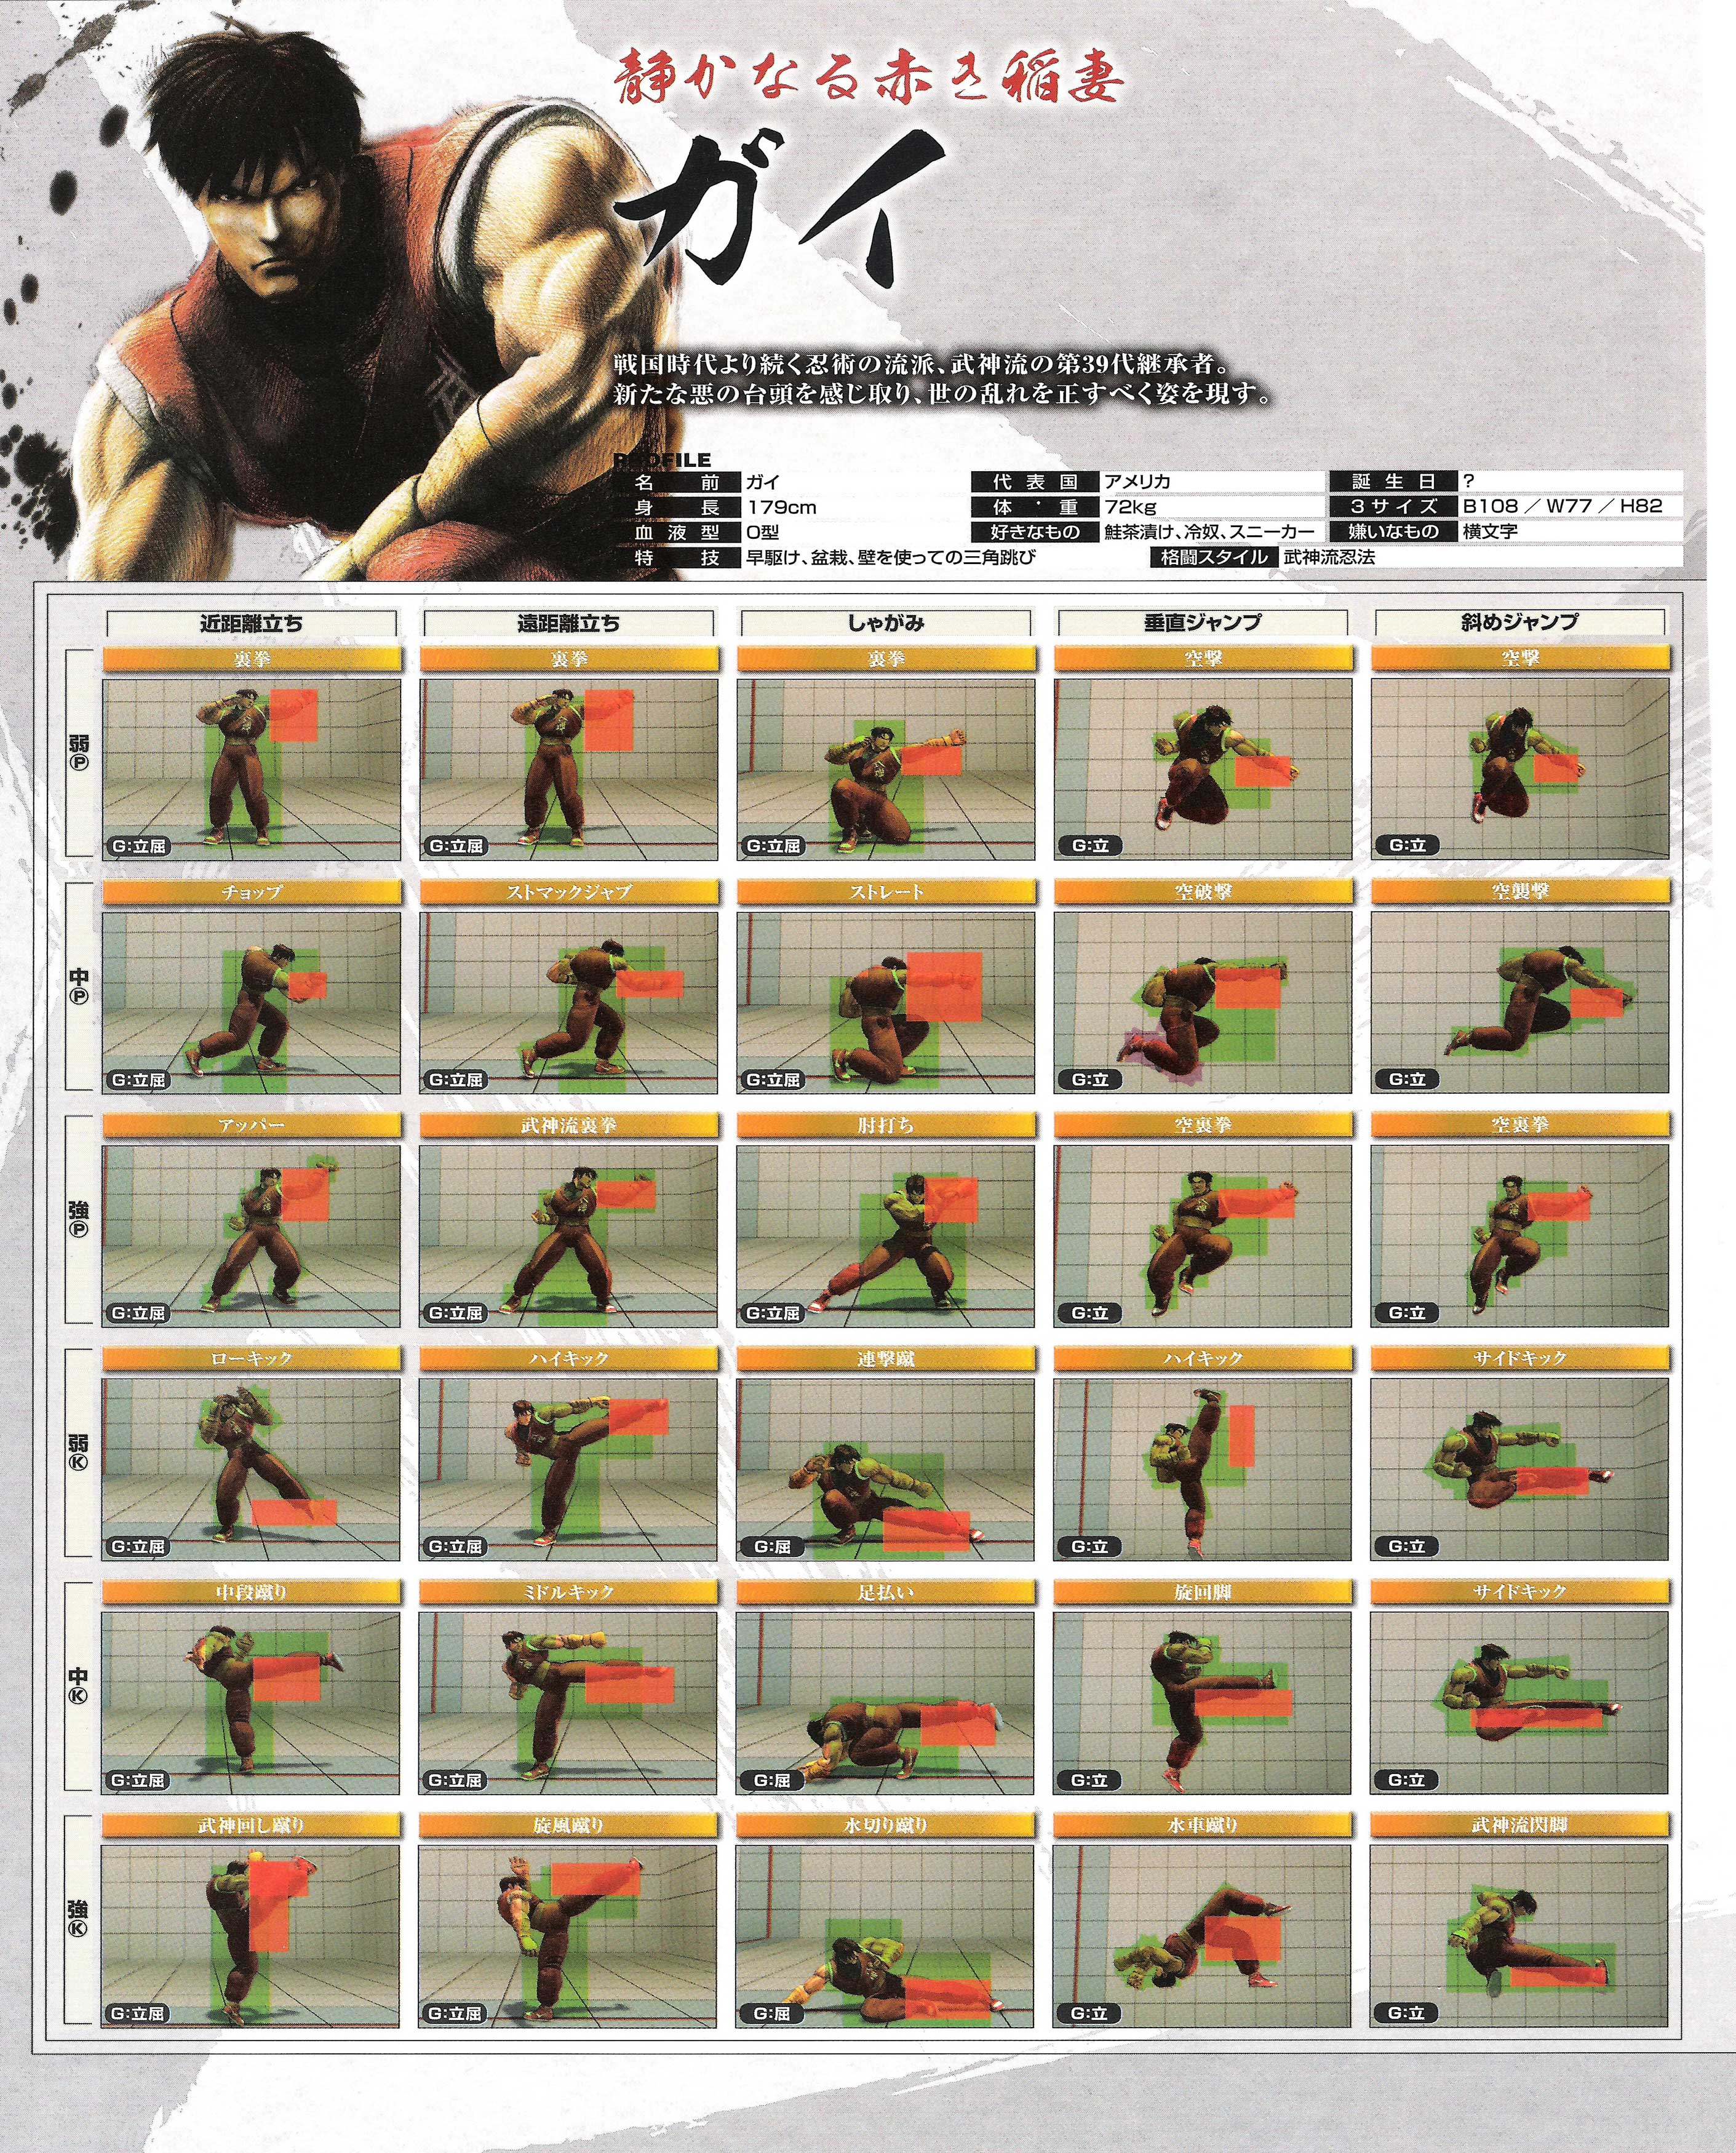 Guy's hit box information for Super Street Fighter 4 Arcade Edition image #1